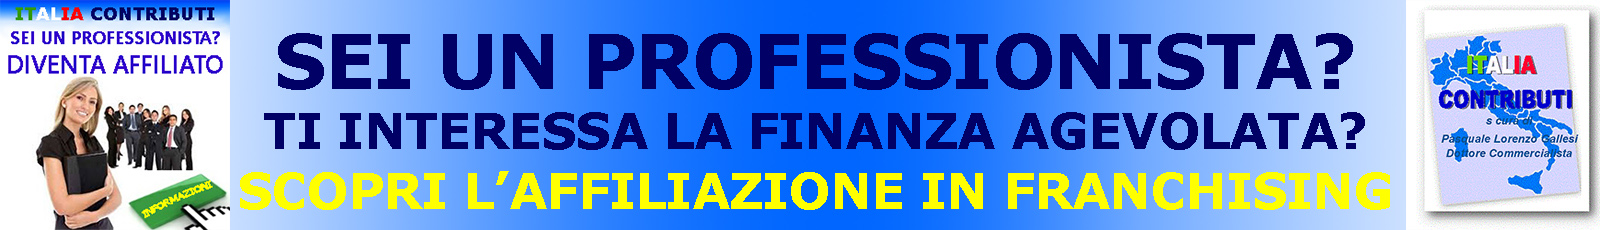 AFFILIAZIONE IN FRANCHISING